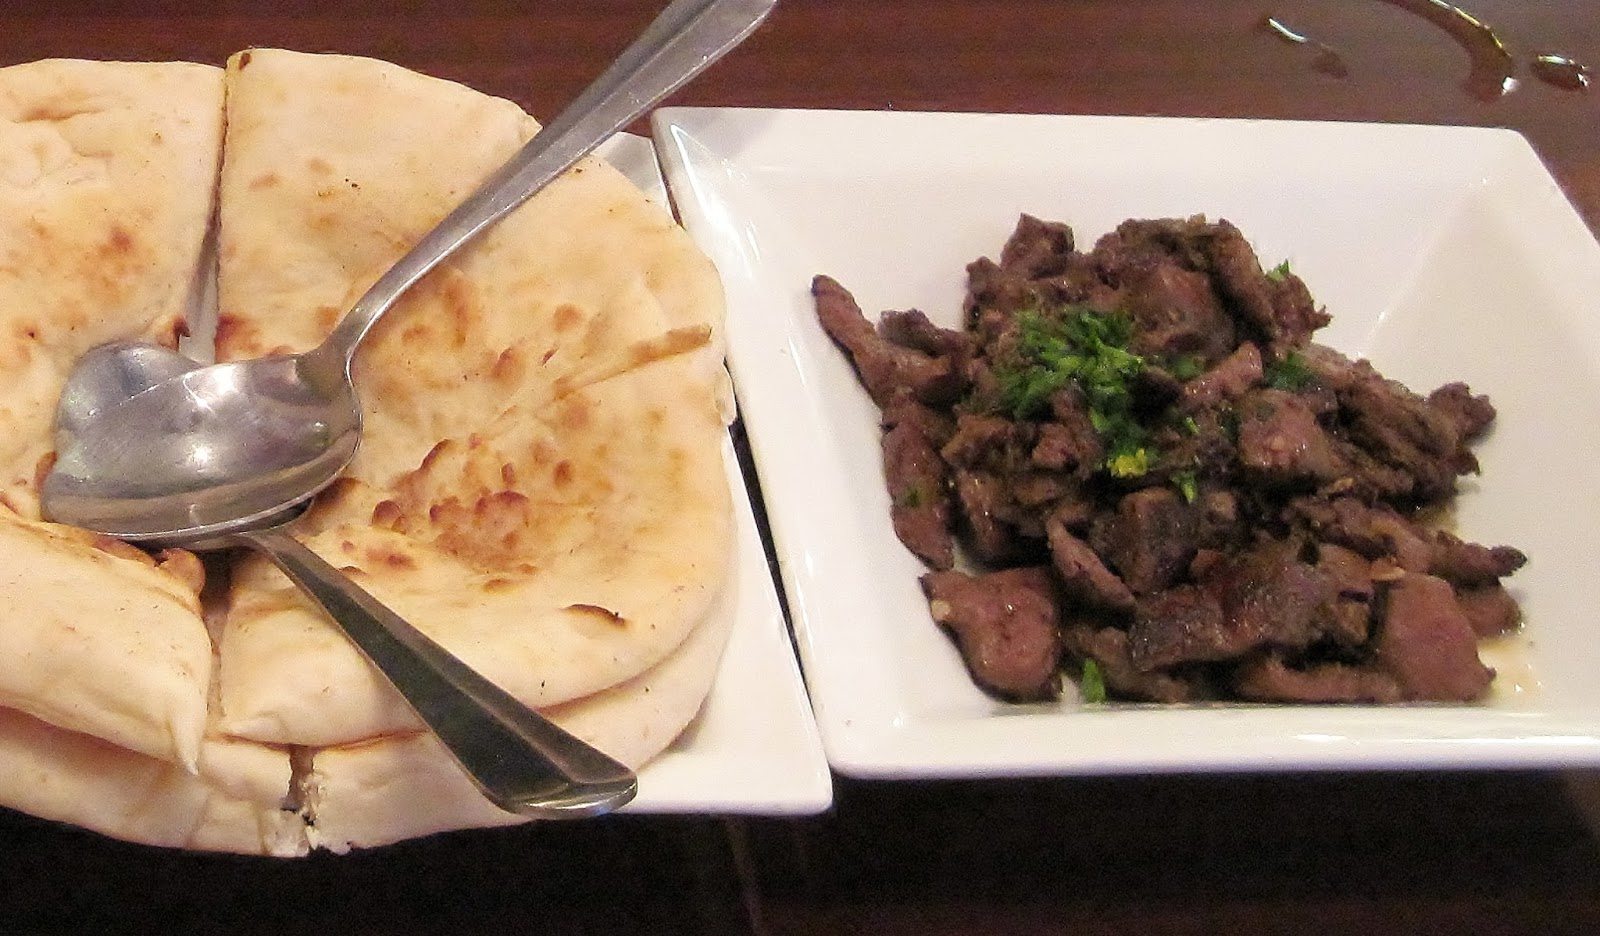 Egyptian style calf liver